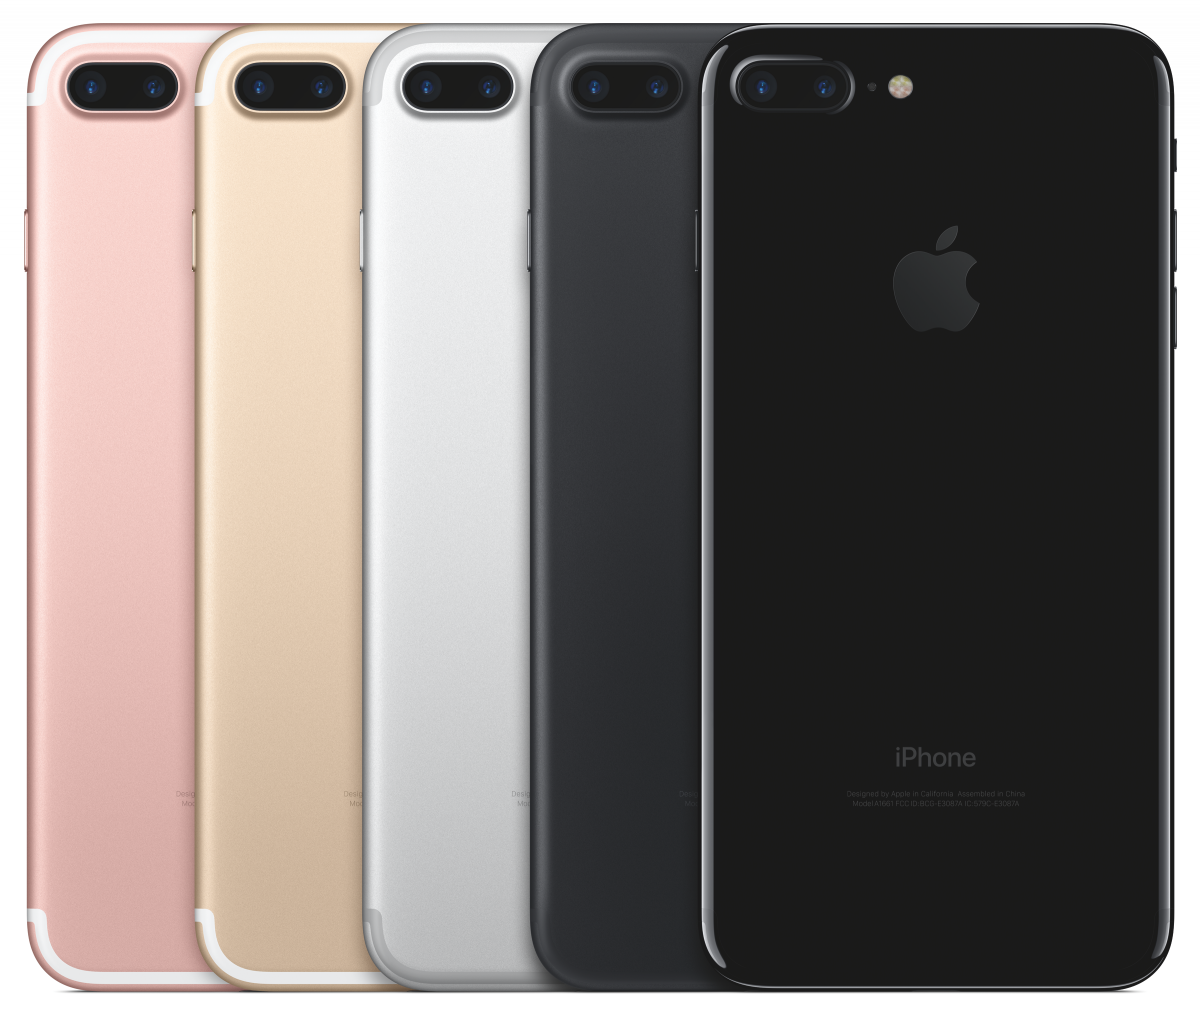 iPhone 7 vs. iPhone 6 - Colors